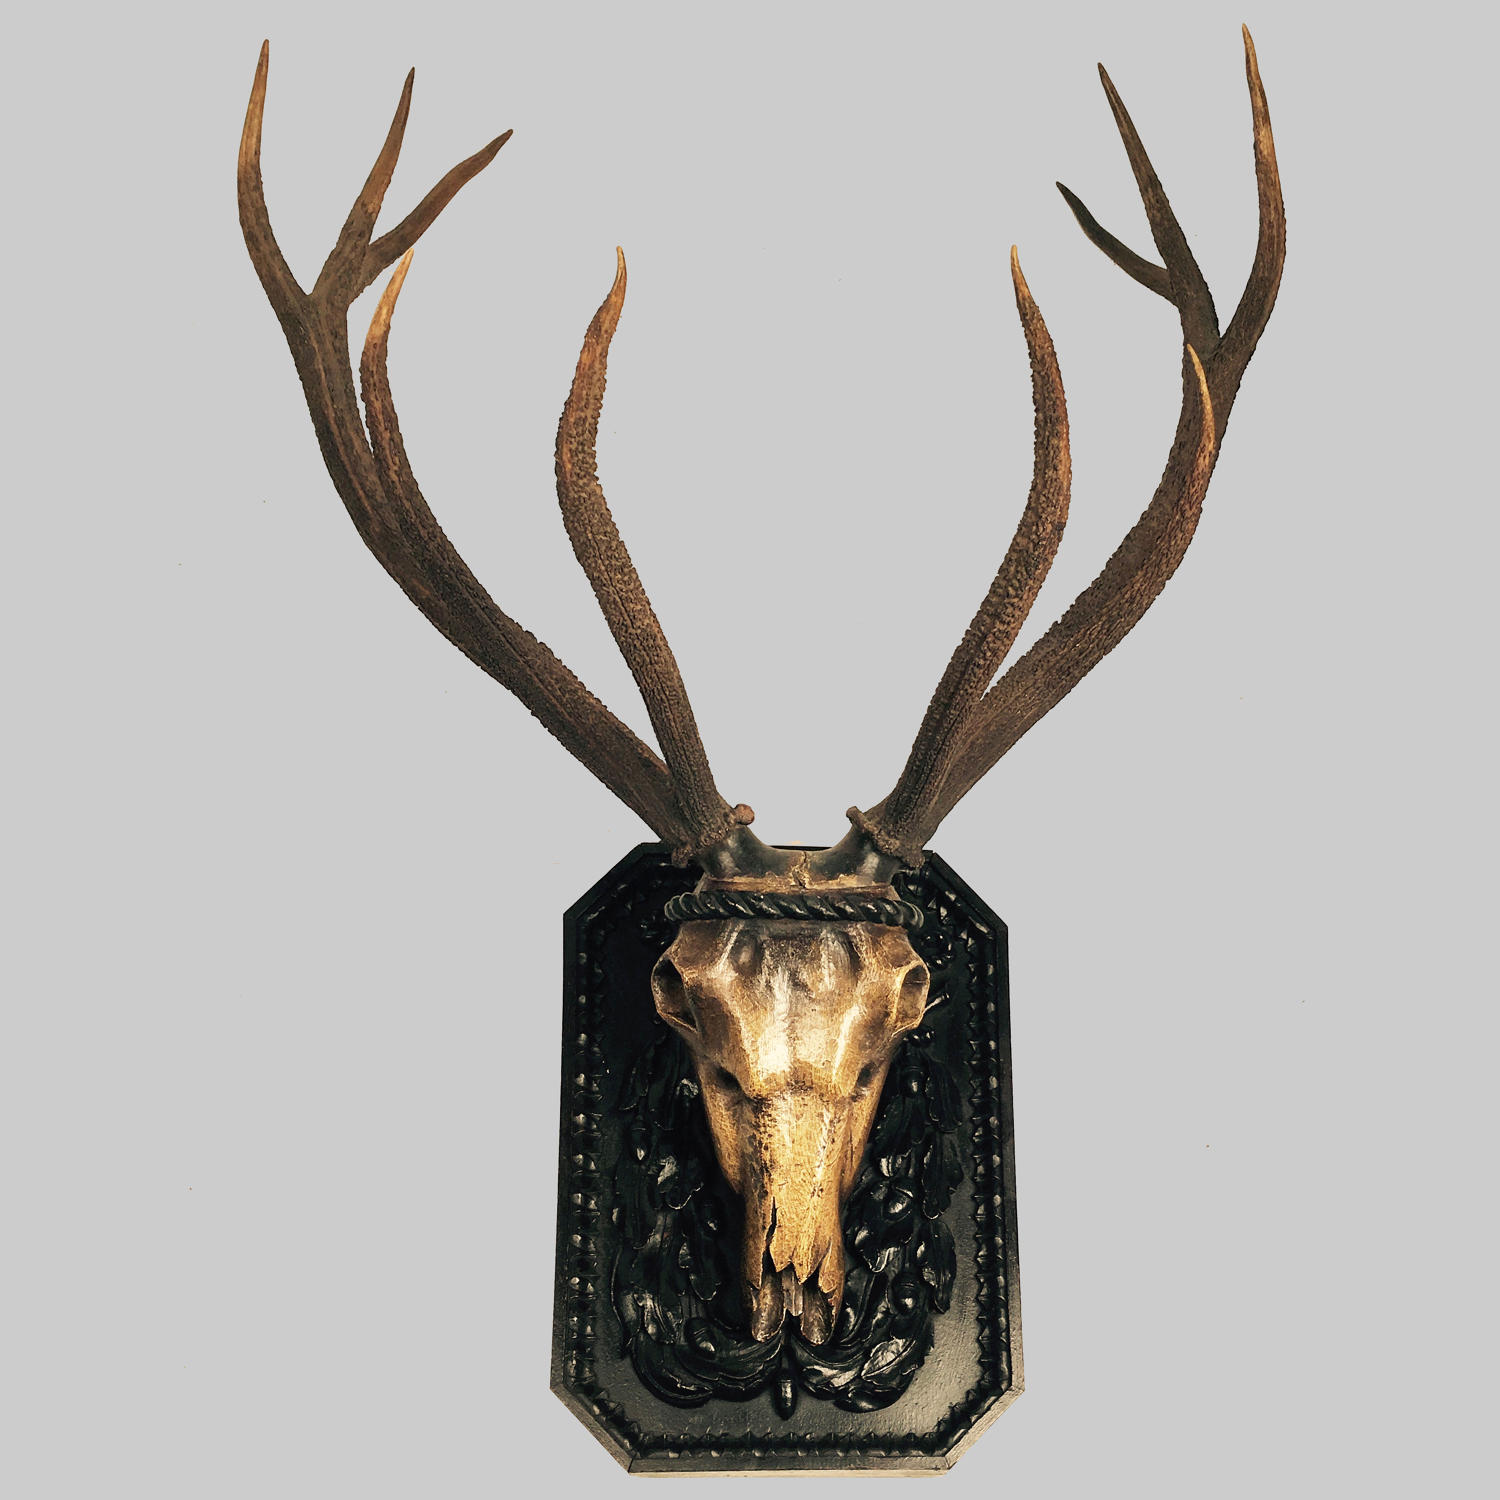 French 18th century antique carved stag's head